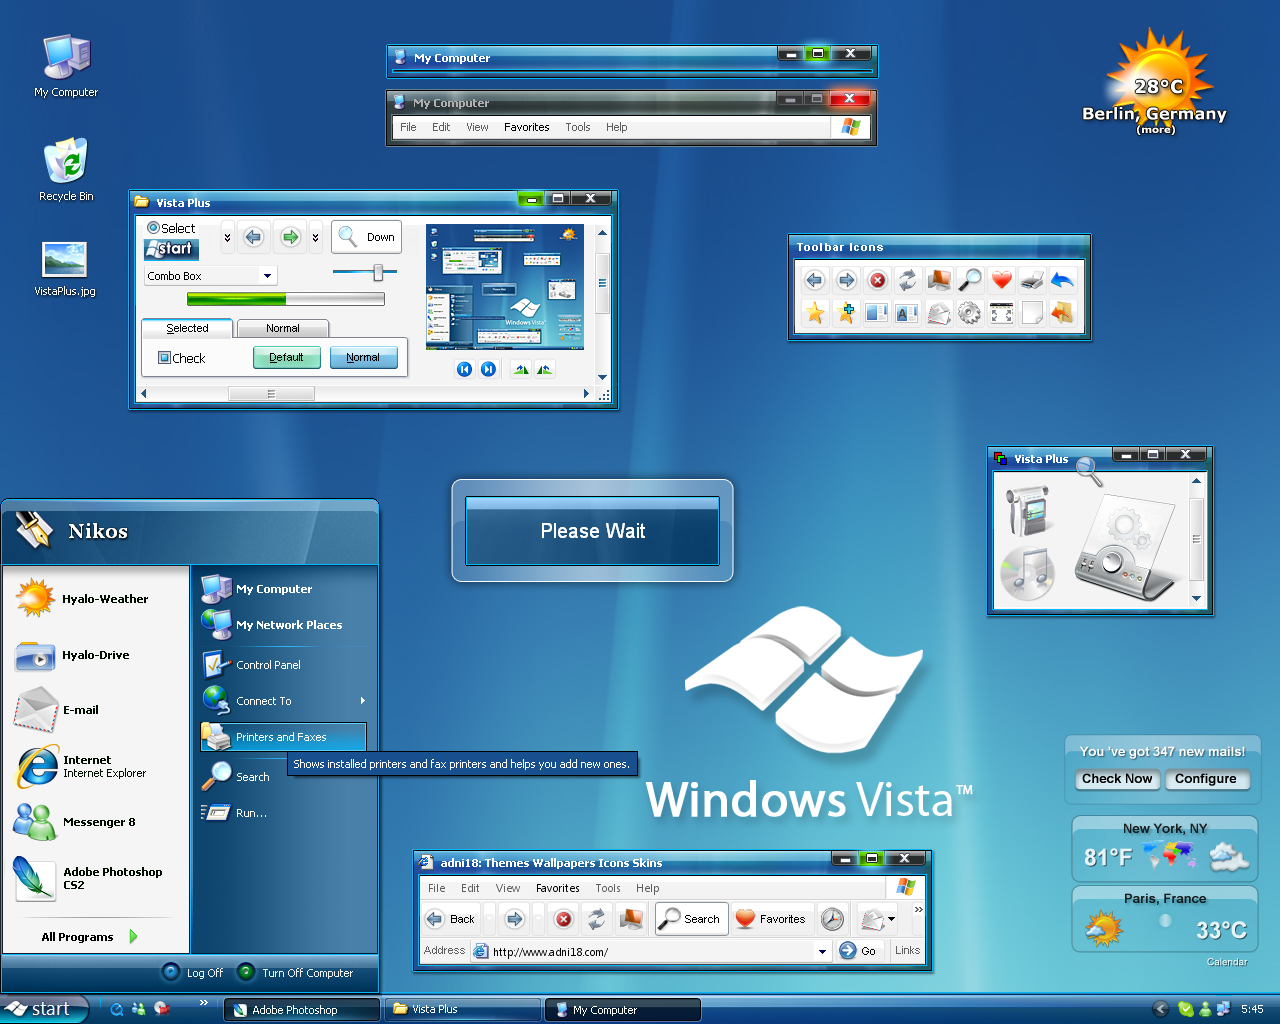 Personalizando tu Windows